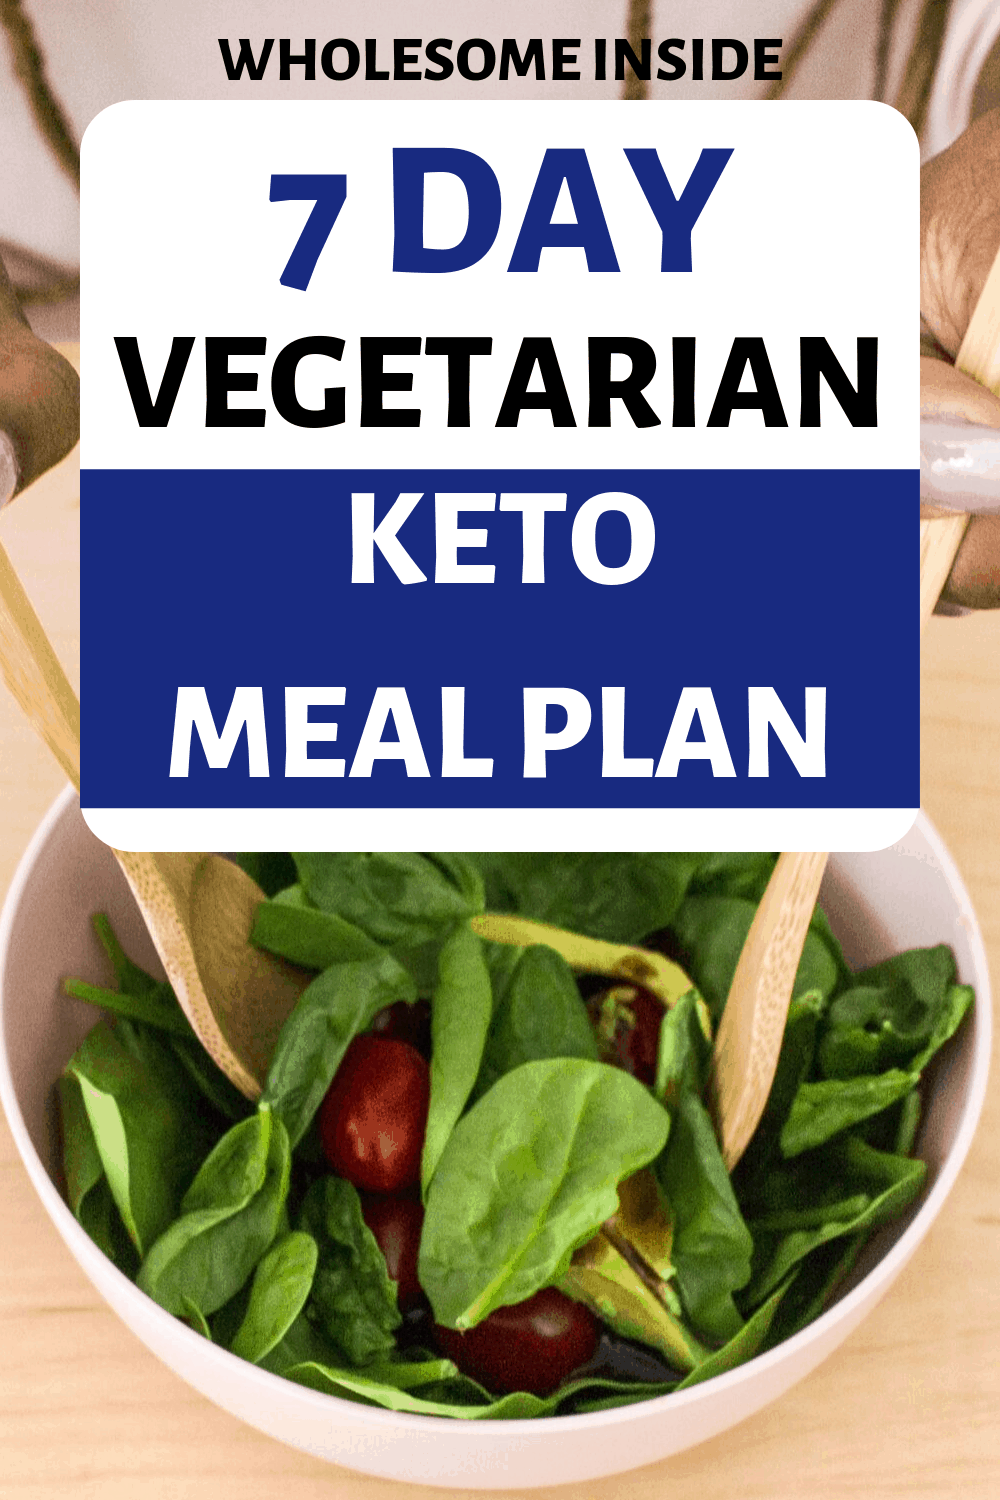 Vegetarian meal plan for those that are vegetarian and on the Keto diet.